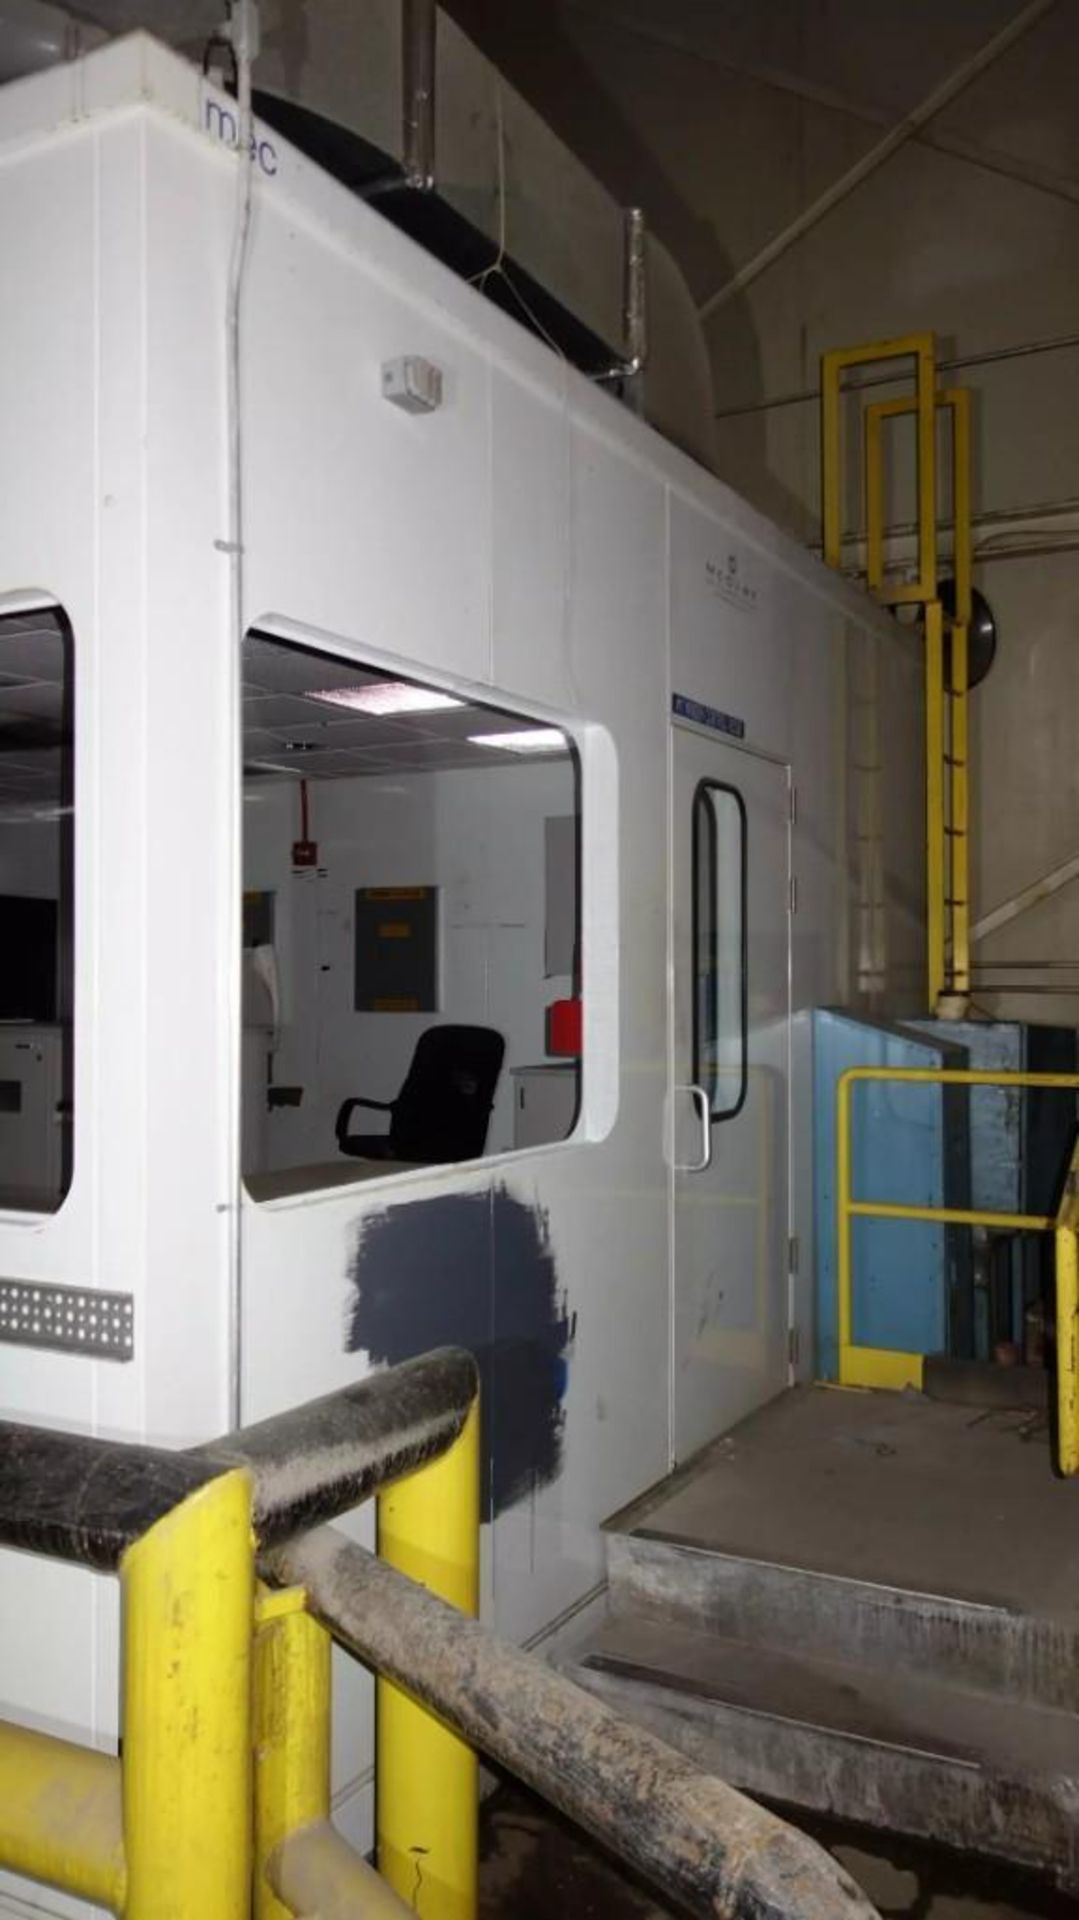 PREFABRICATED MODULAR OFFICE MECART COMMAND CENTER OFFICE WITH CONTENTS, 25X18FT (MISSING WINDOWS) - Image 9 of 11